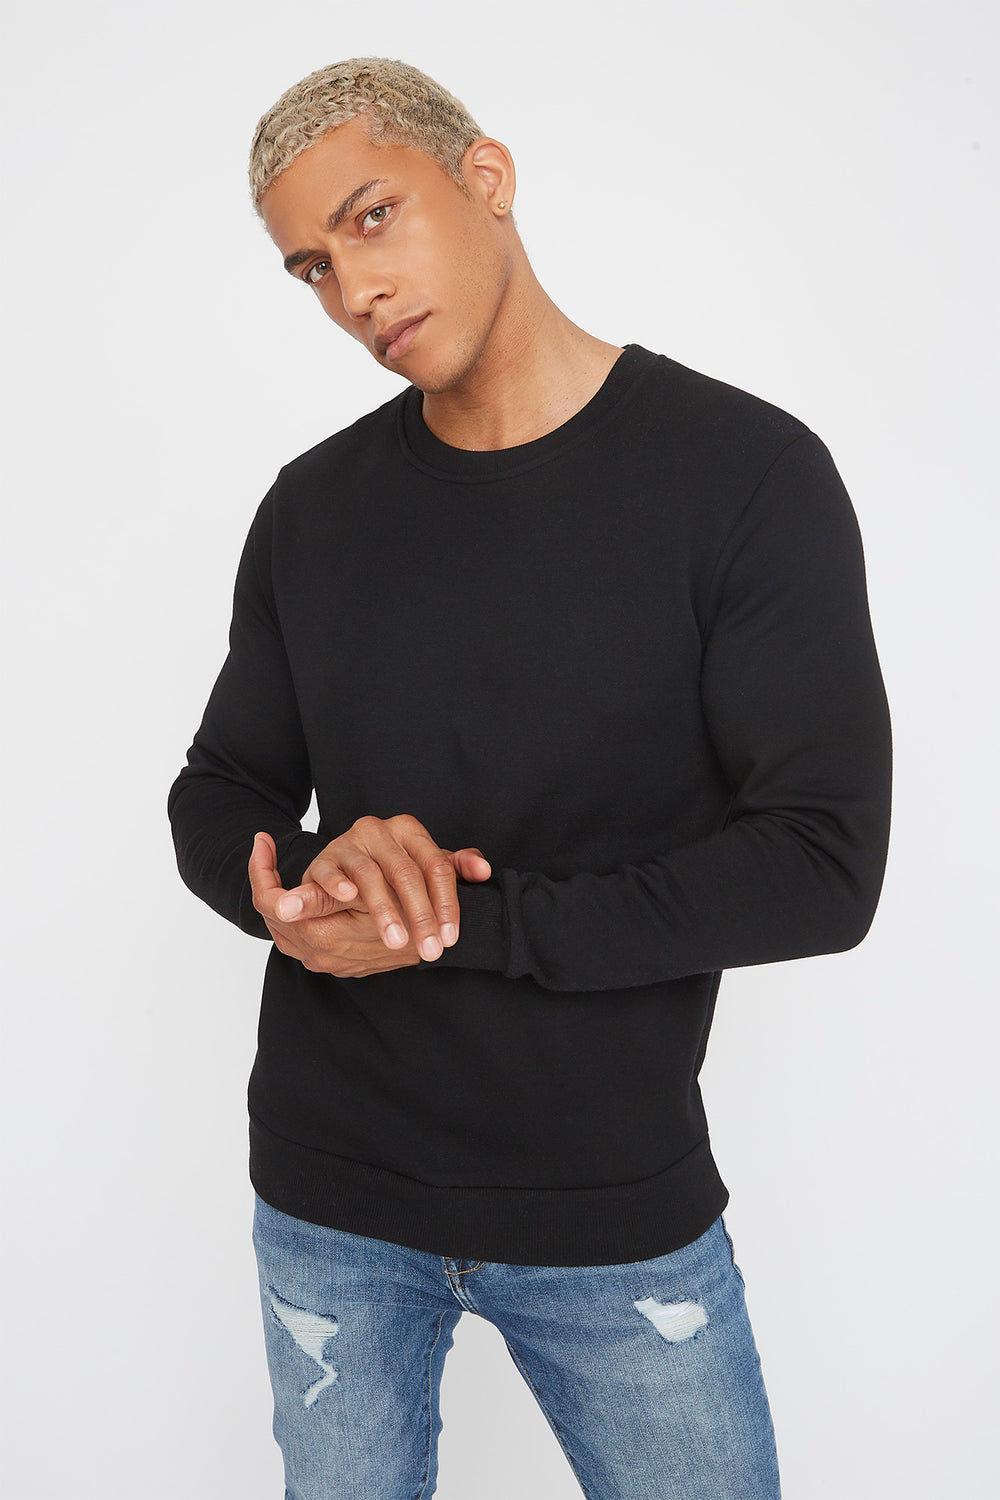 Solid Basic Crew Neck Sweater Black